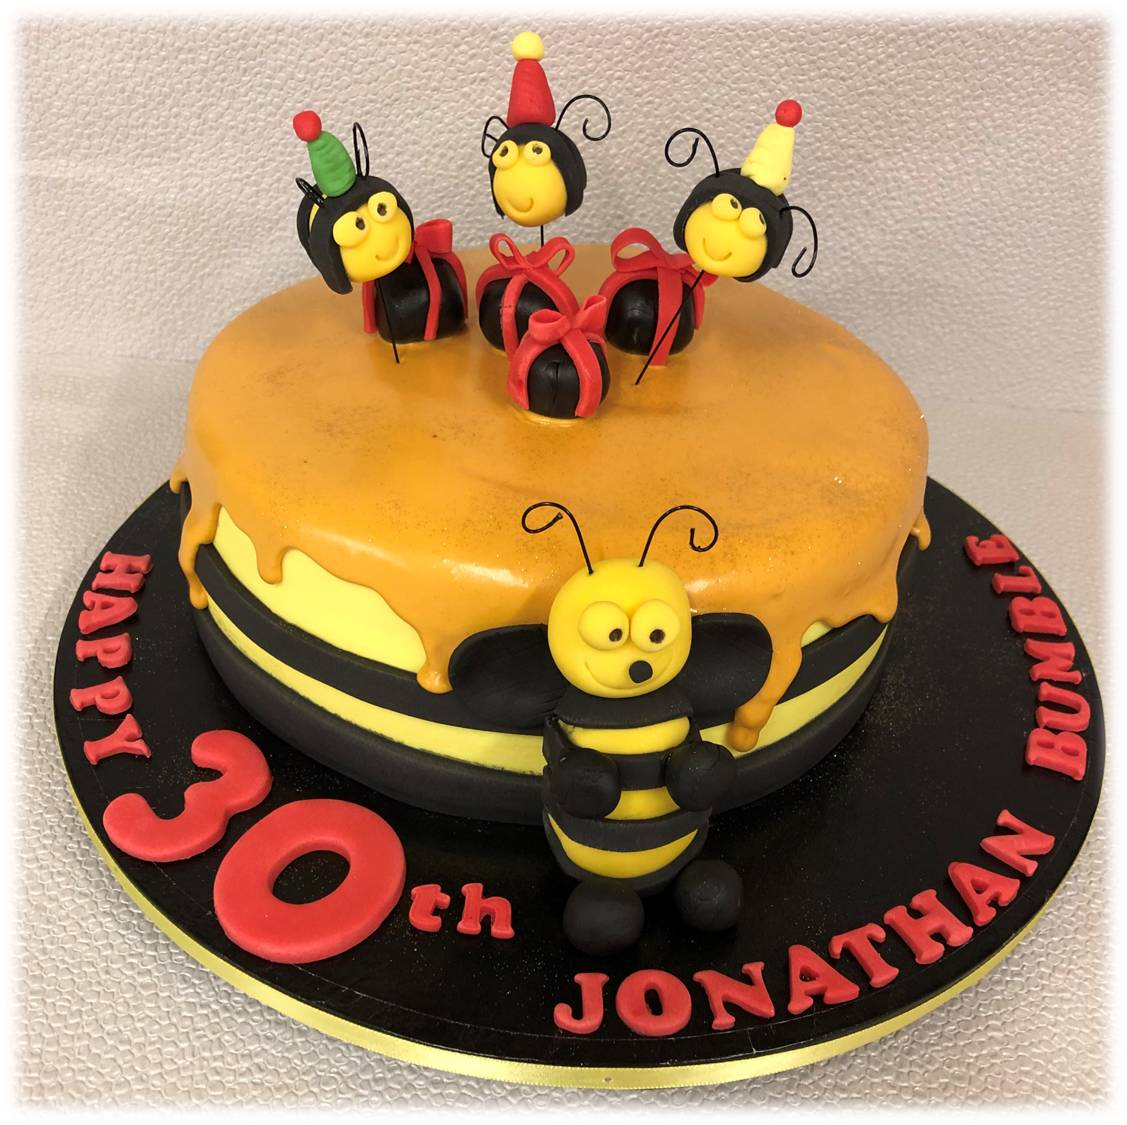 Bumble bee drizzle cake.jpg